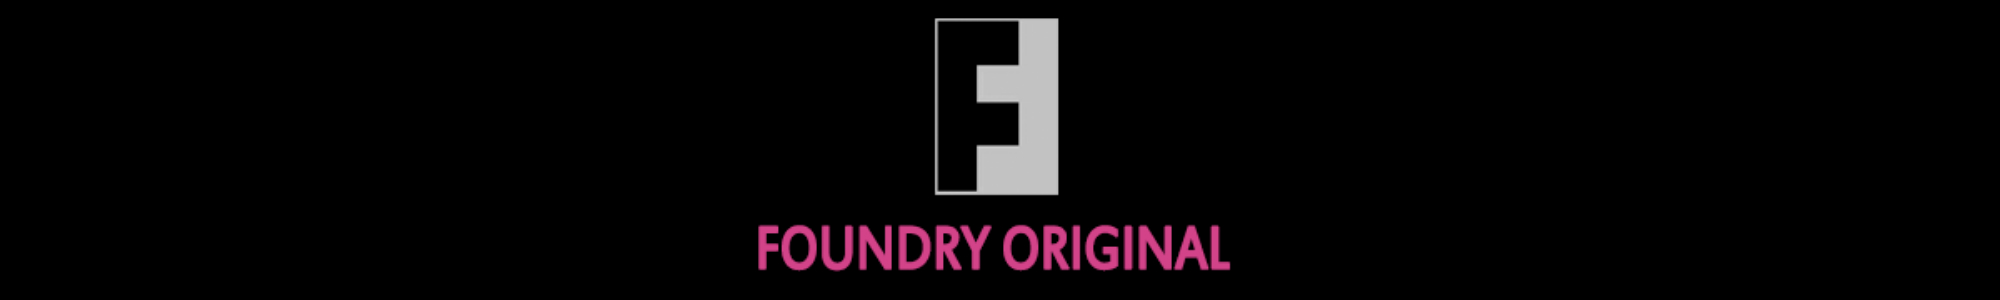 The Foundry - Original